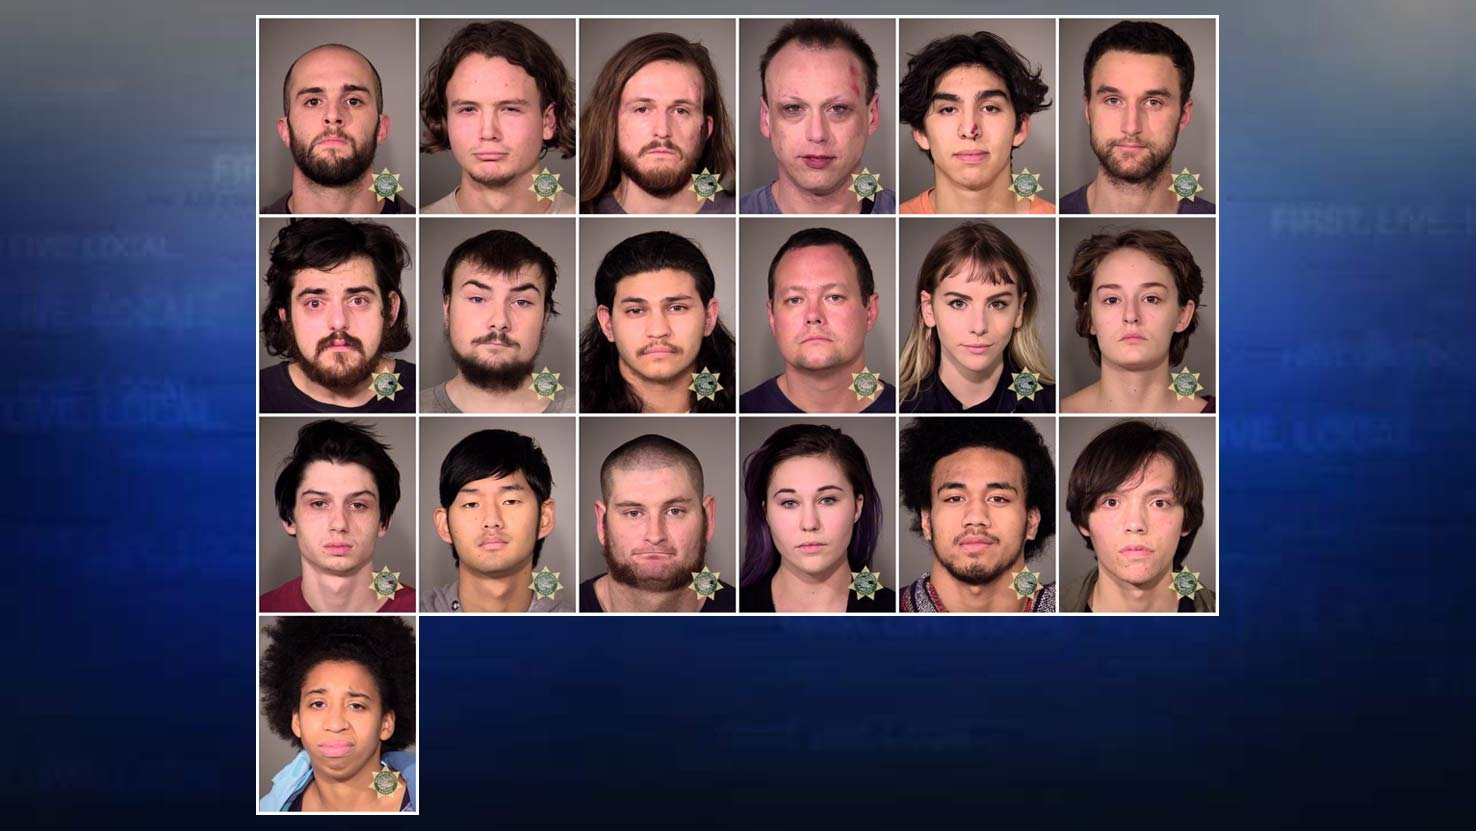 Photos of the 19 people booked into the Multnomah County Jail in connection with Thursday's protest and riot in Portland. (Photos: Portland Police Bureau)